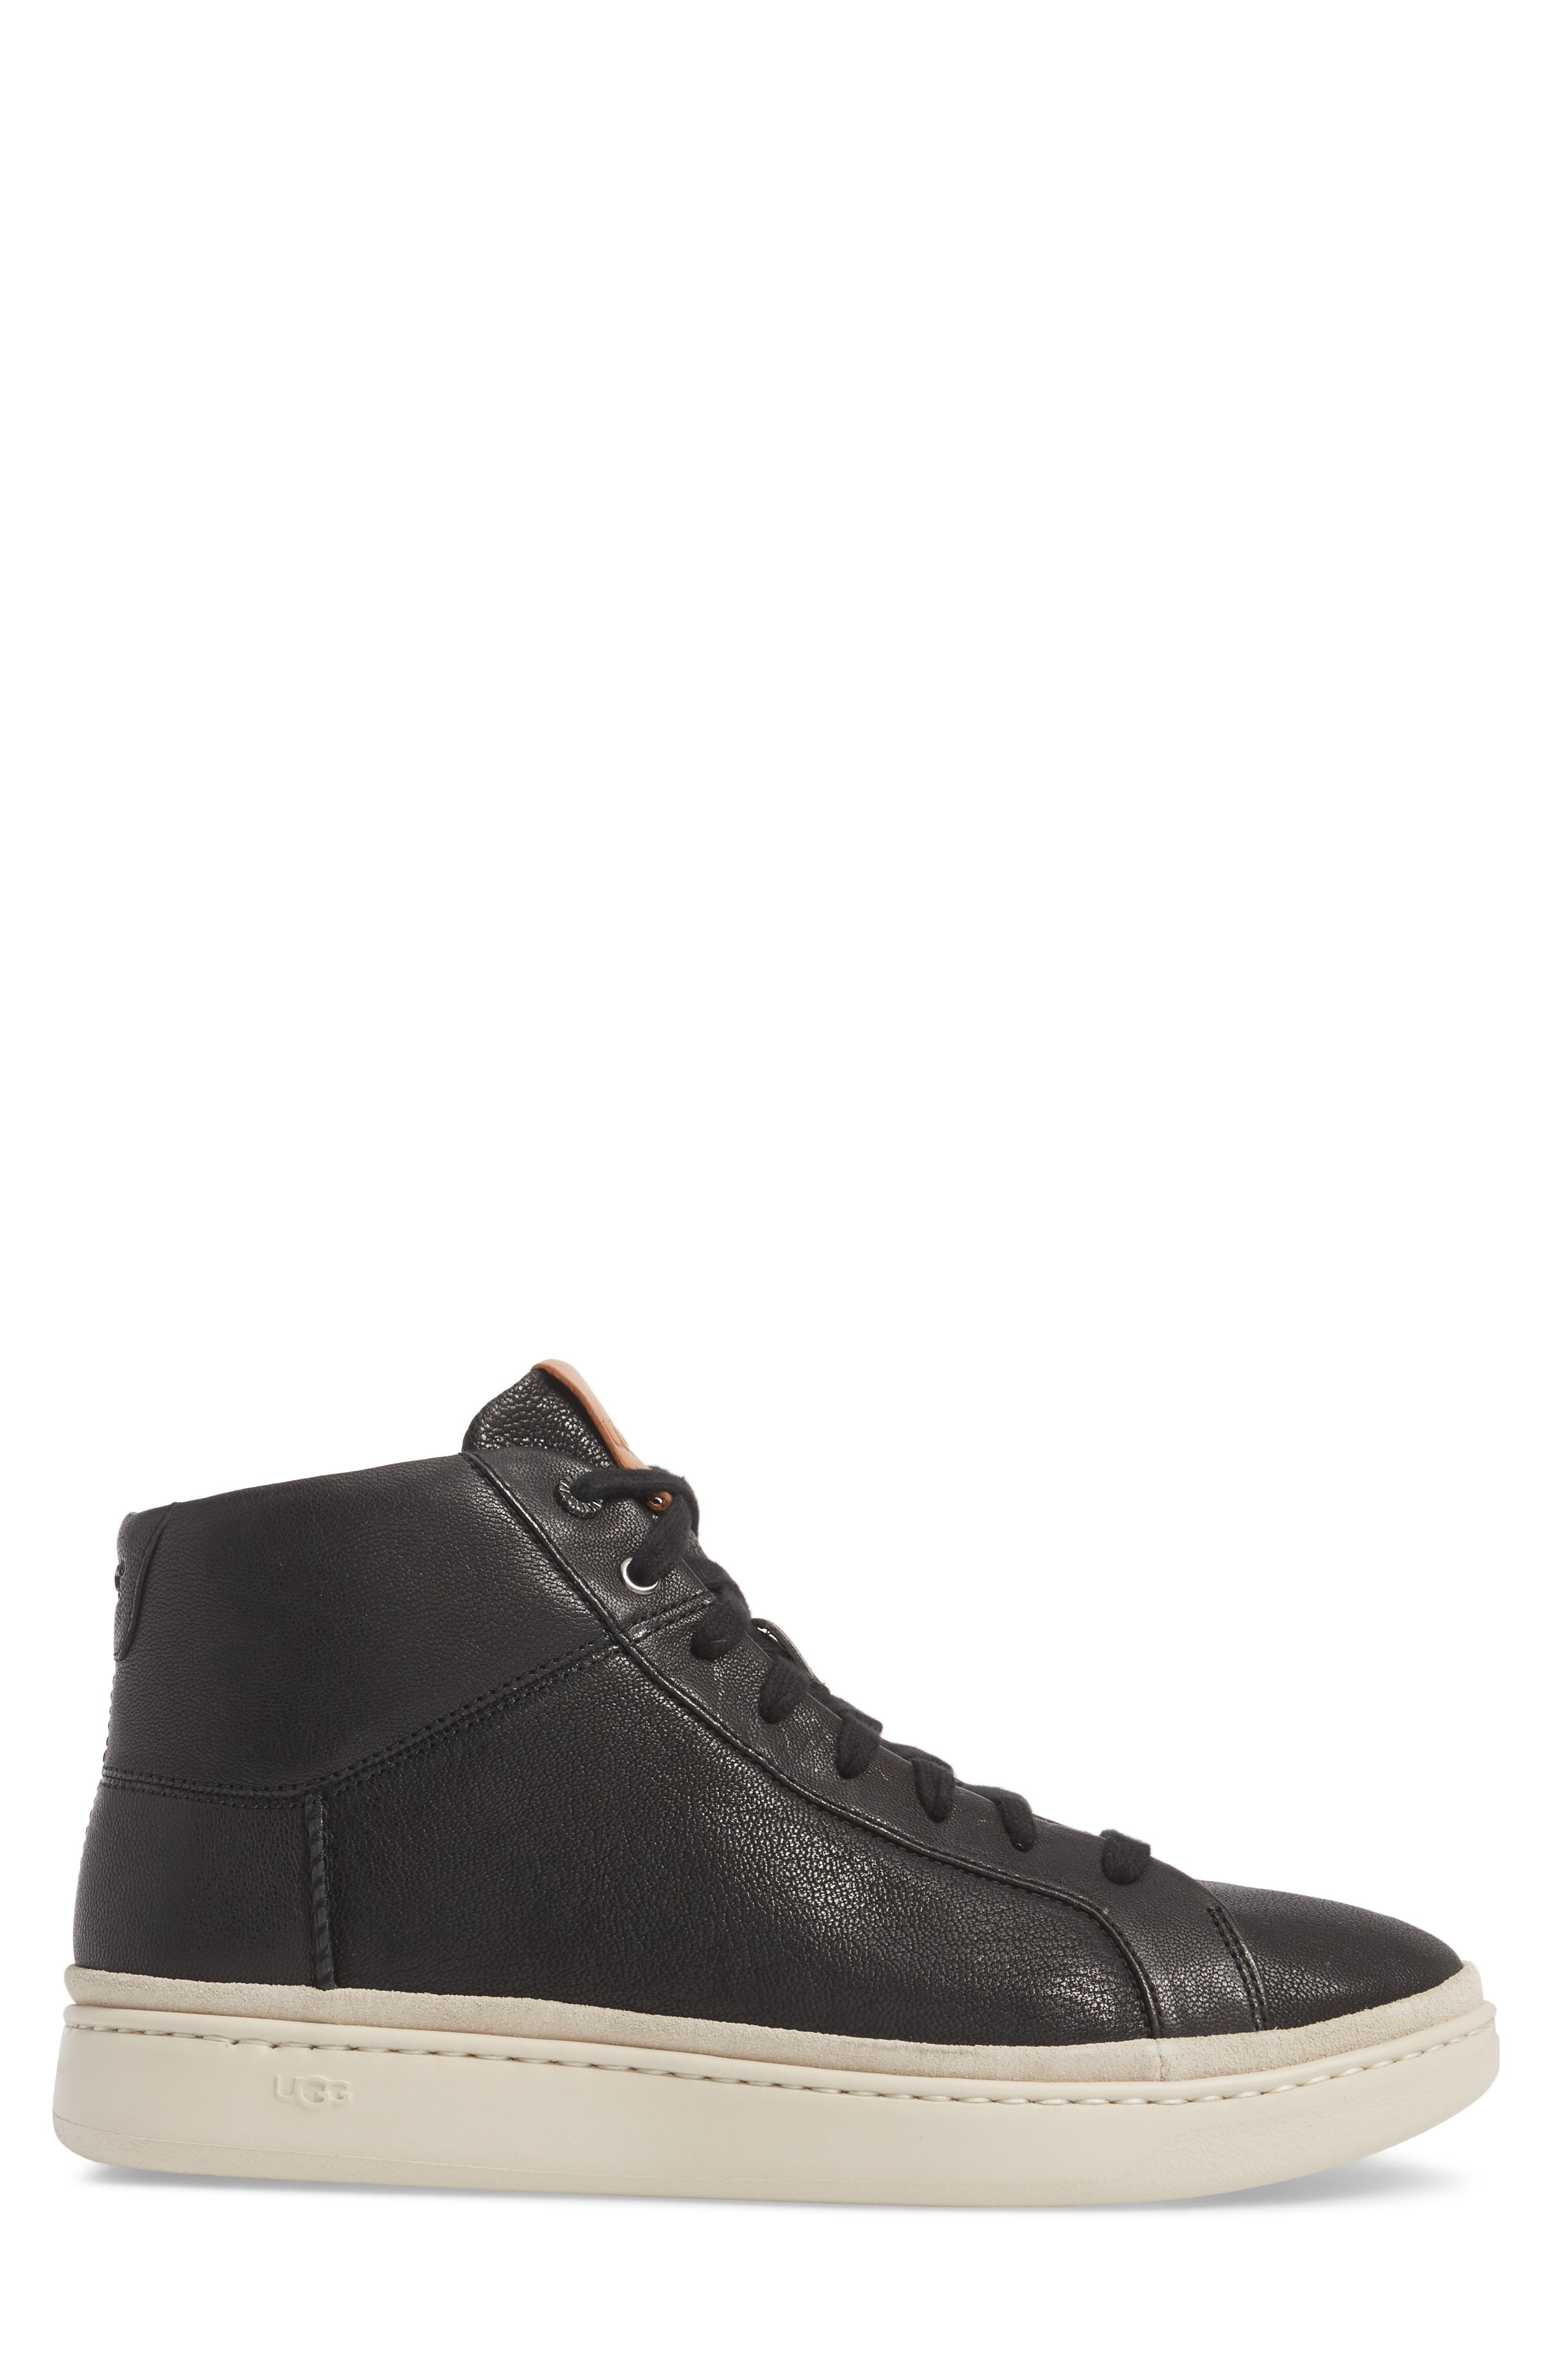 Cali High Top Sneaker,                             Alternate thumbnail 3, color,                             Black Leather